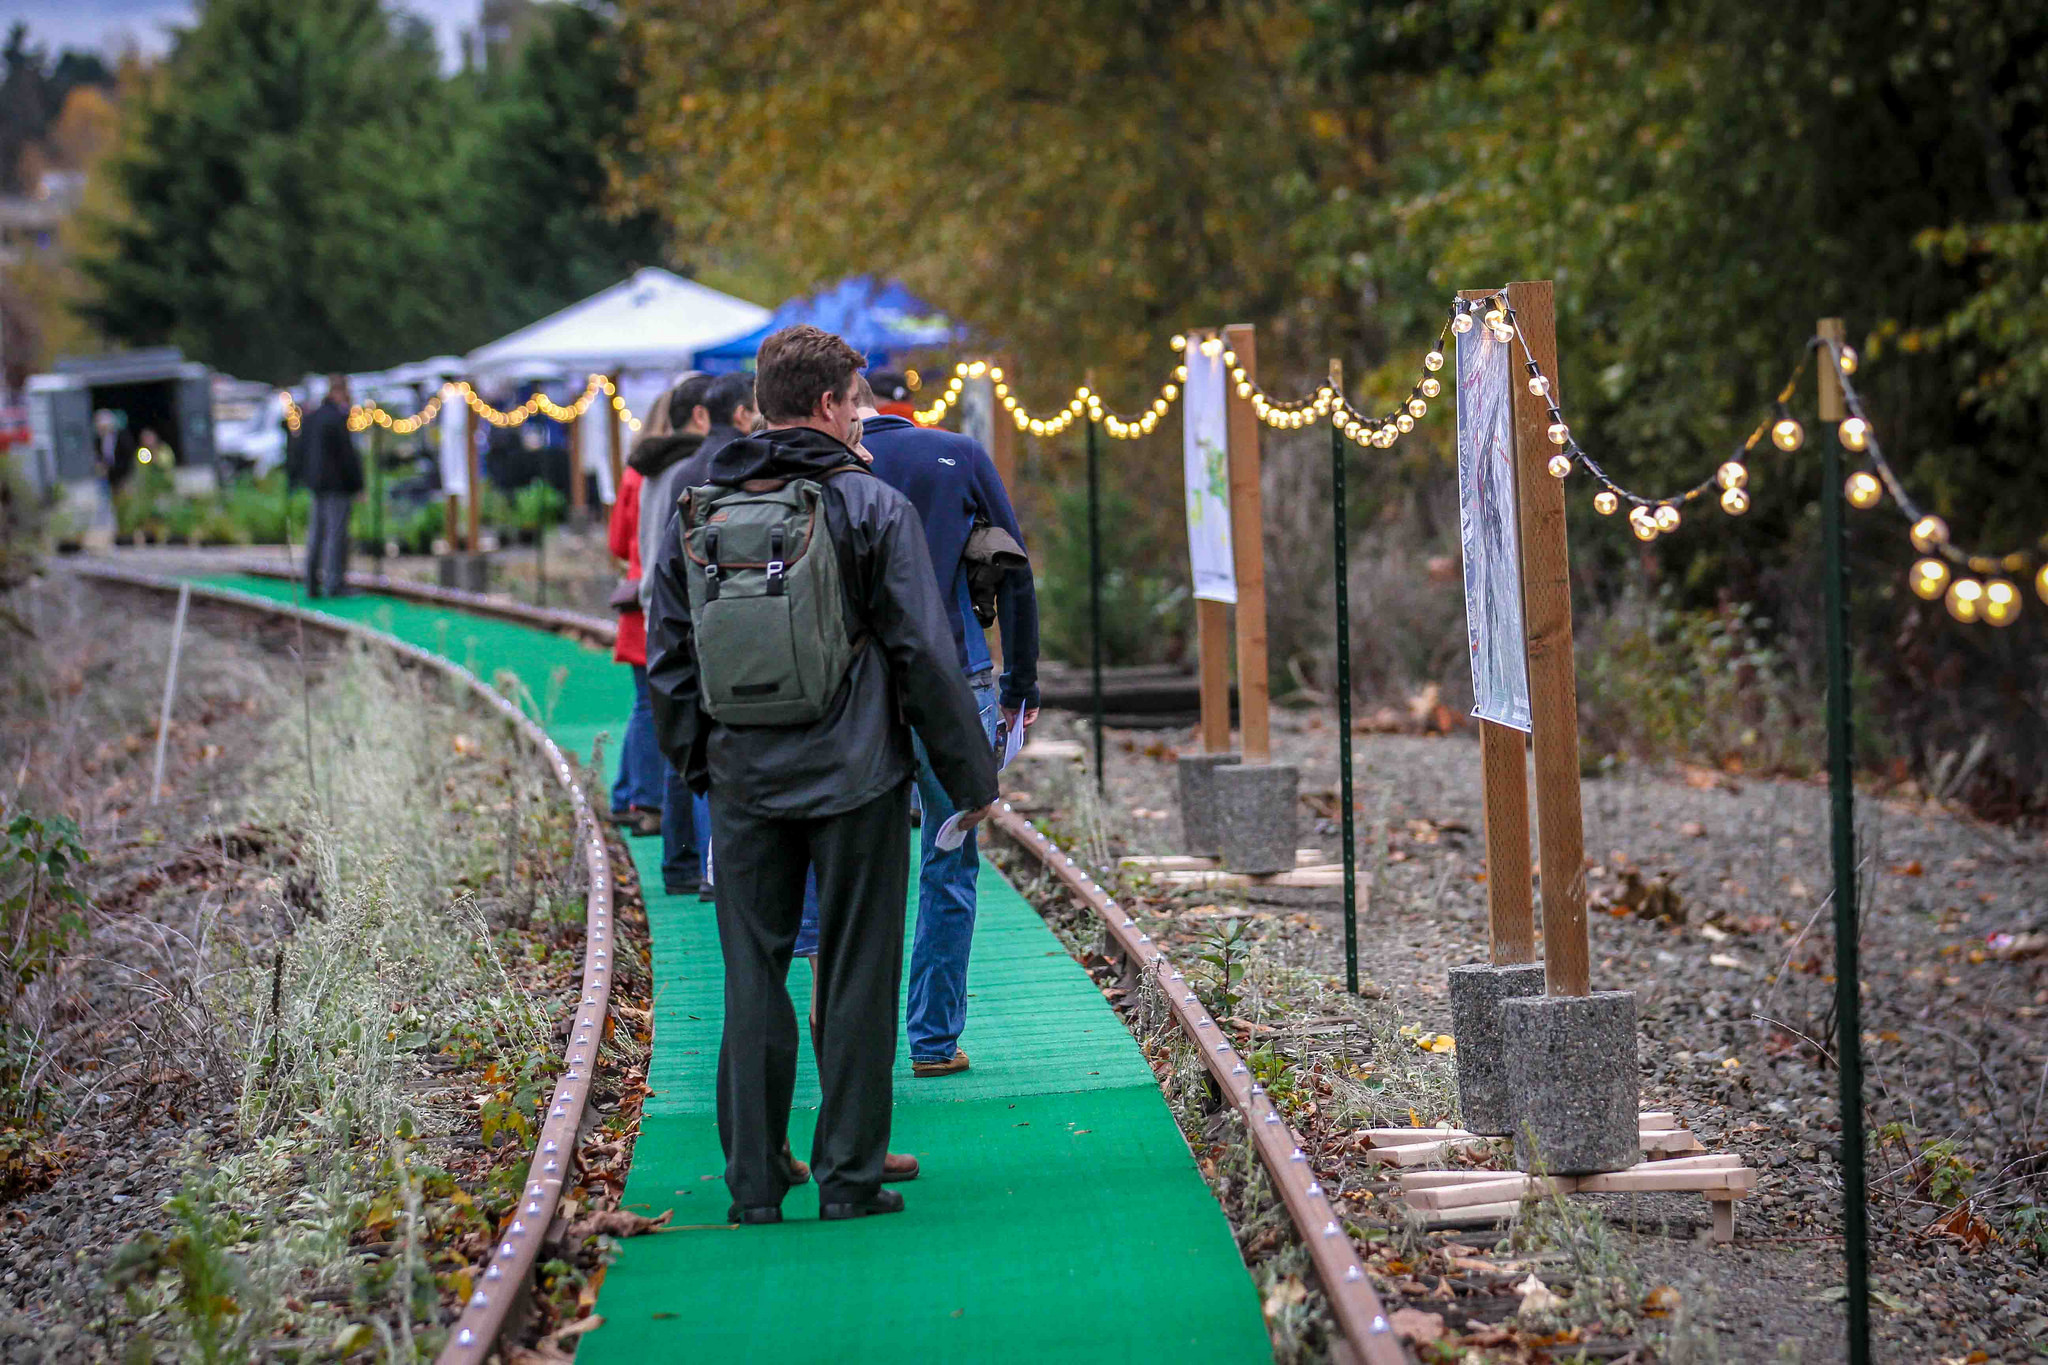 Enlivening Wilburton: Trailside Cafe, was a pop-up outdoor cafe where rails become a trail and for one evening a rail corridor was transformed into a lively community gathering place, setting the vision for this as a future location of an iconic community space.